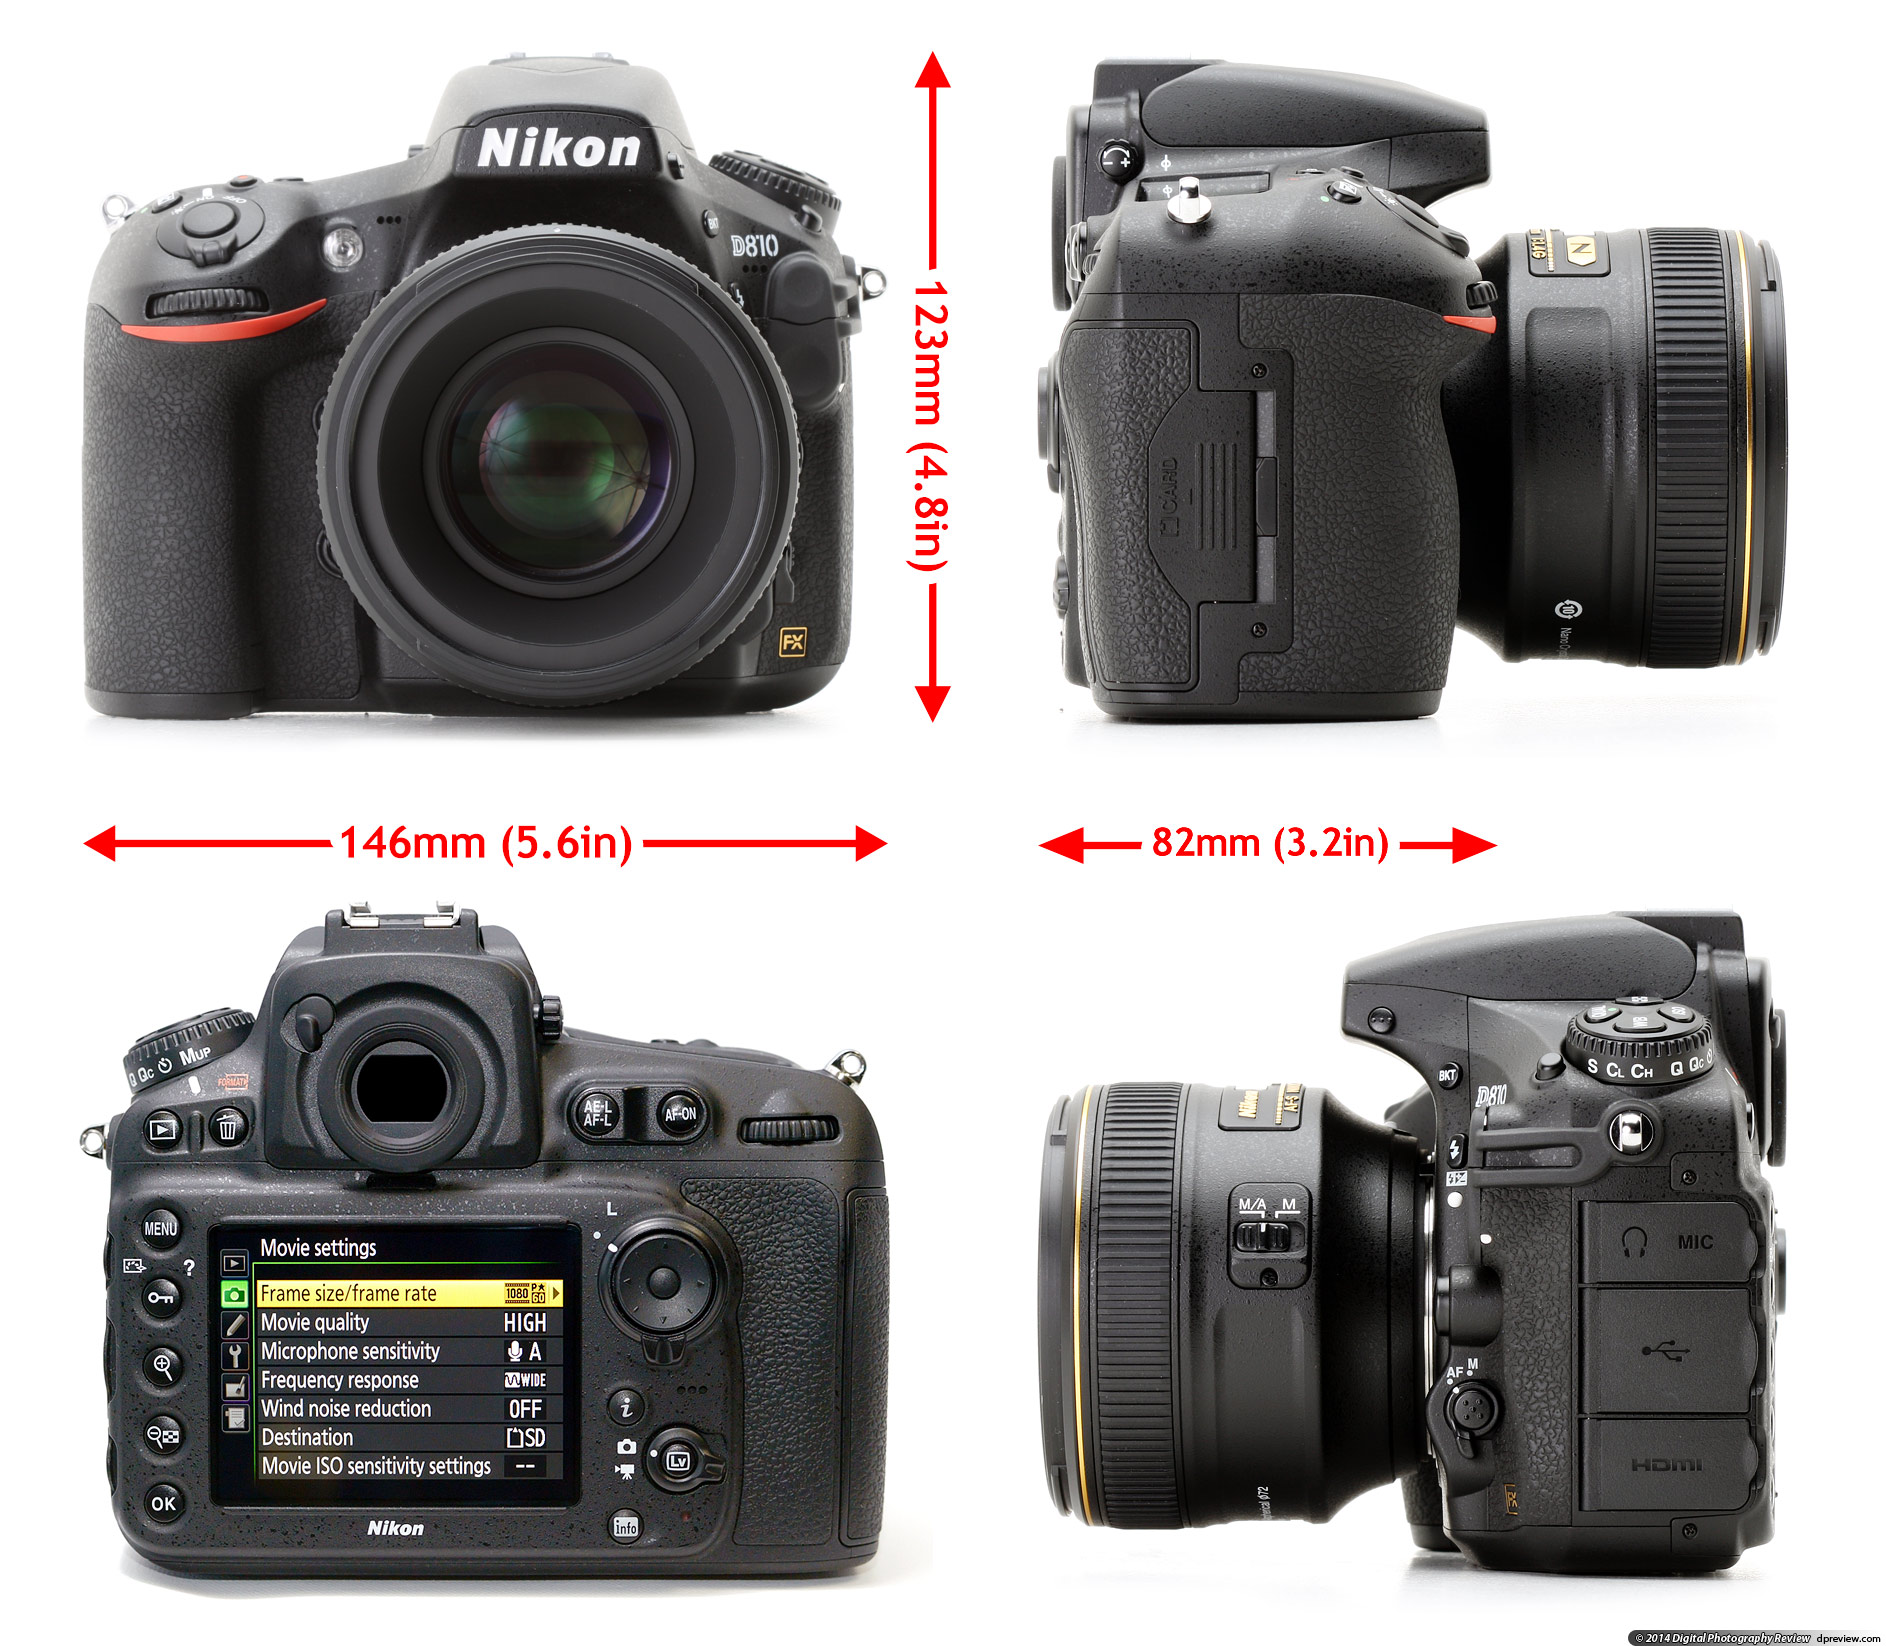 Sleek Is A Very Close Match To Its Predecessors Are Mselves Operationally Benchmark Nikon Digital Photography Review Nikon D800 Vs D810 Forum Nikon D800 Vs D810 Differences dpreview Nikon D800 Vs D810